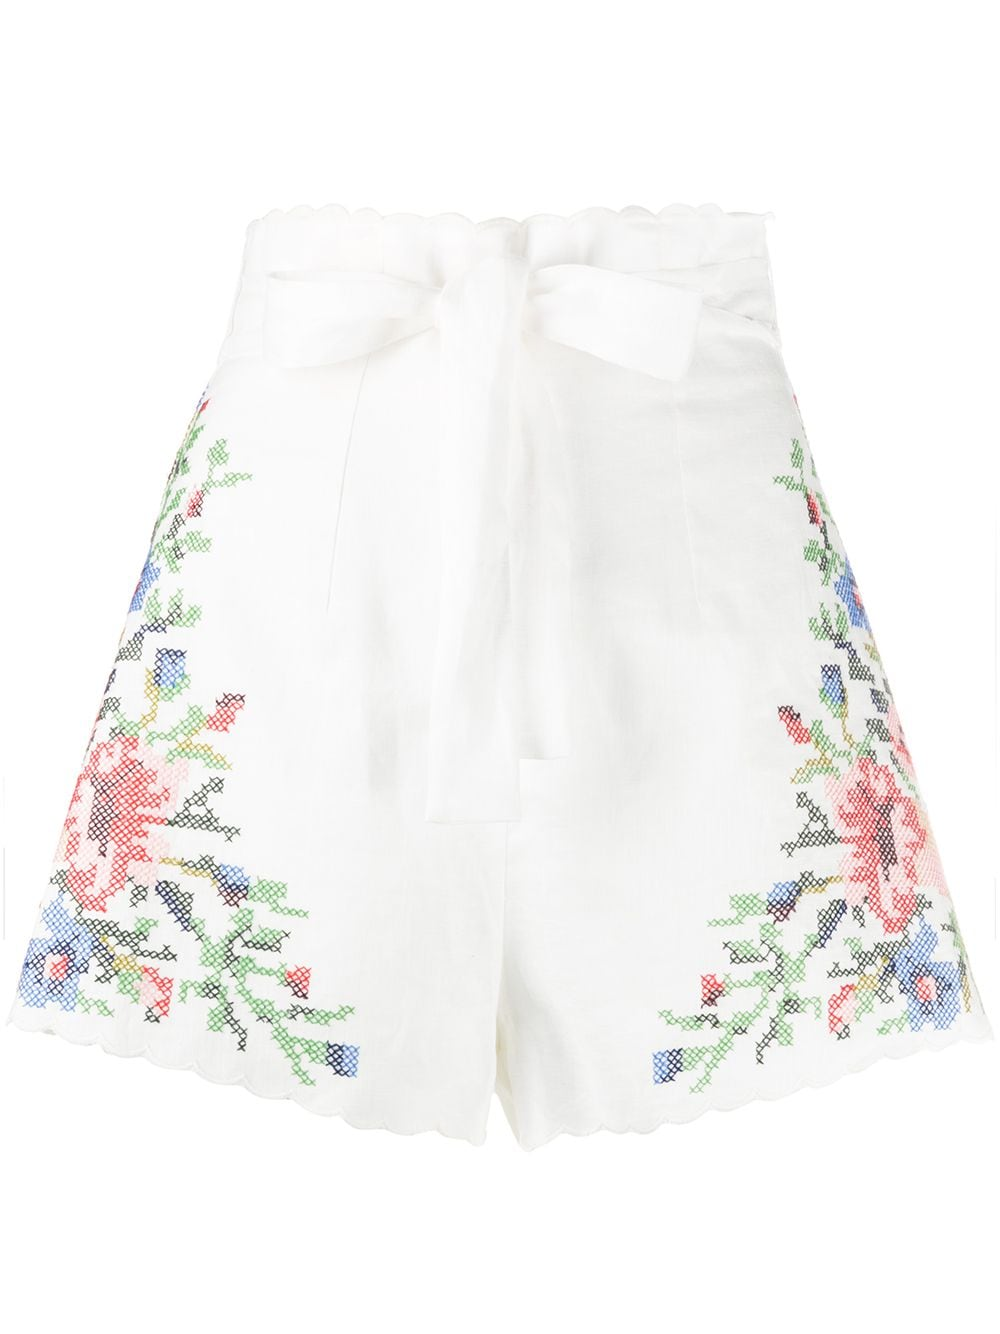 ZIMMERMANN ZIMMERMANN | Shorts | 8496JULIVO